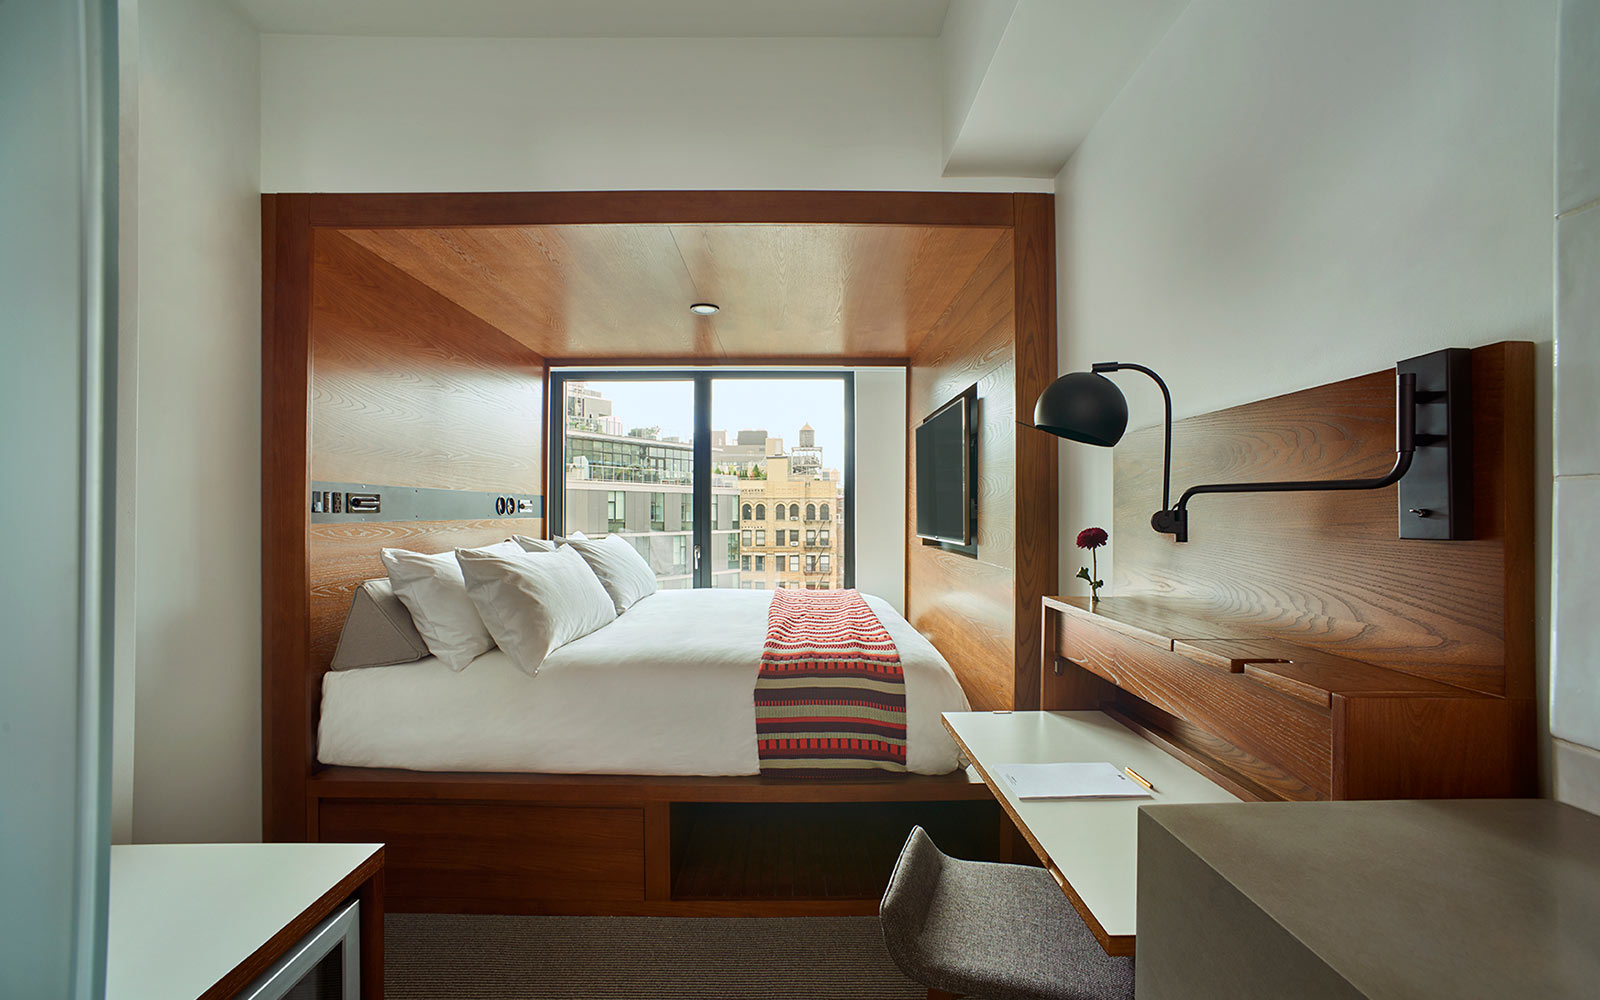 arlo soho in Hotel design ideas at home